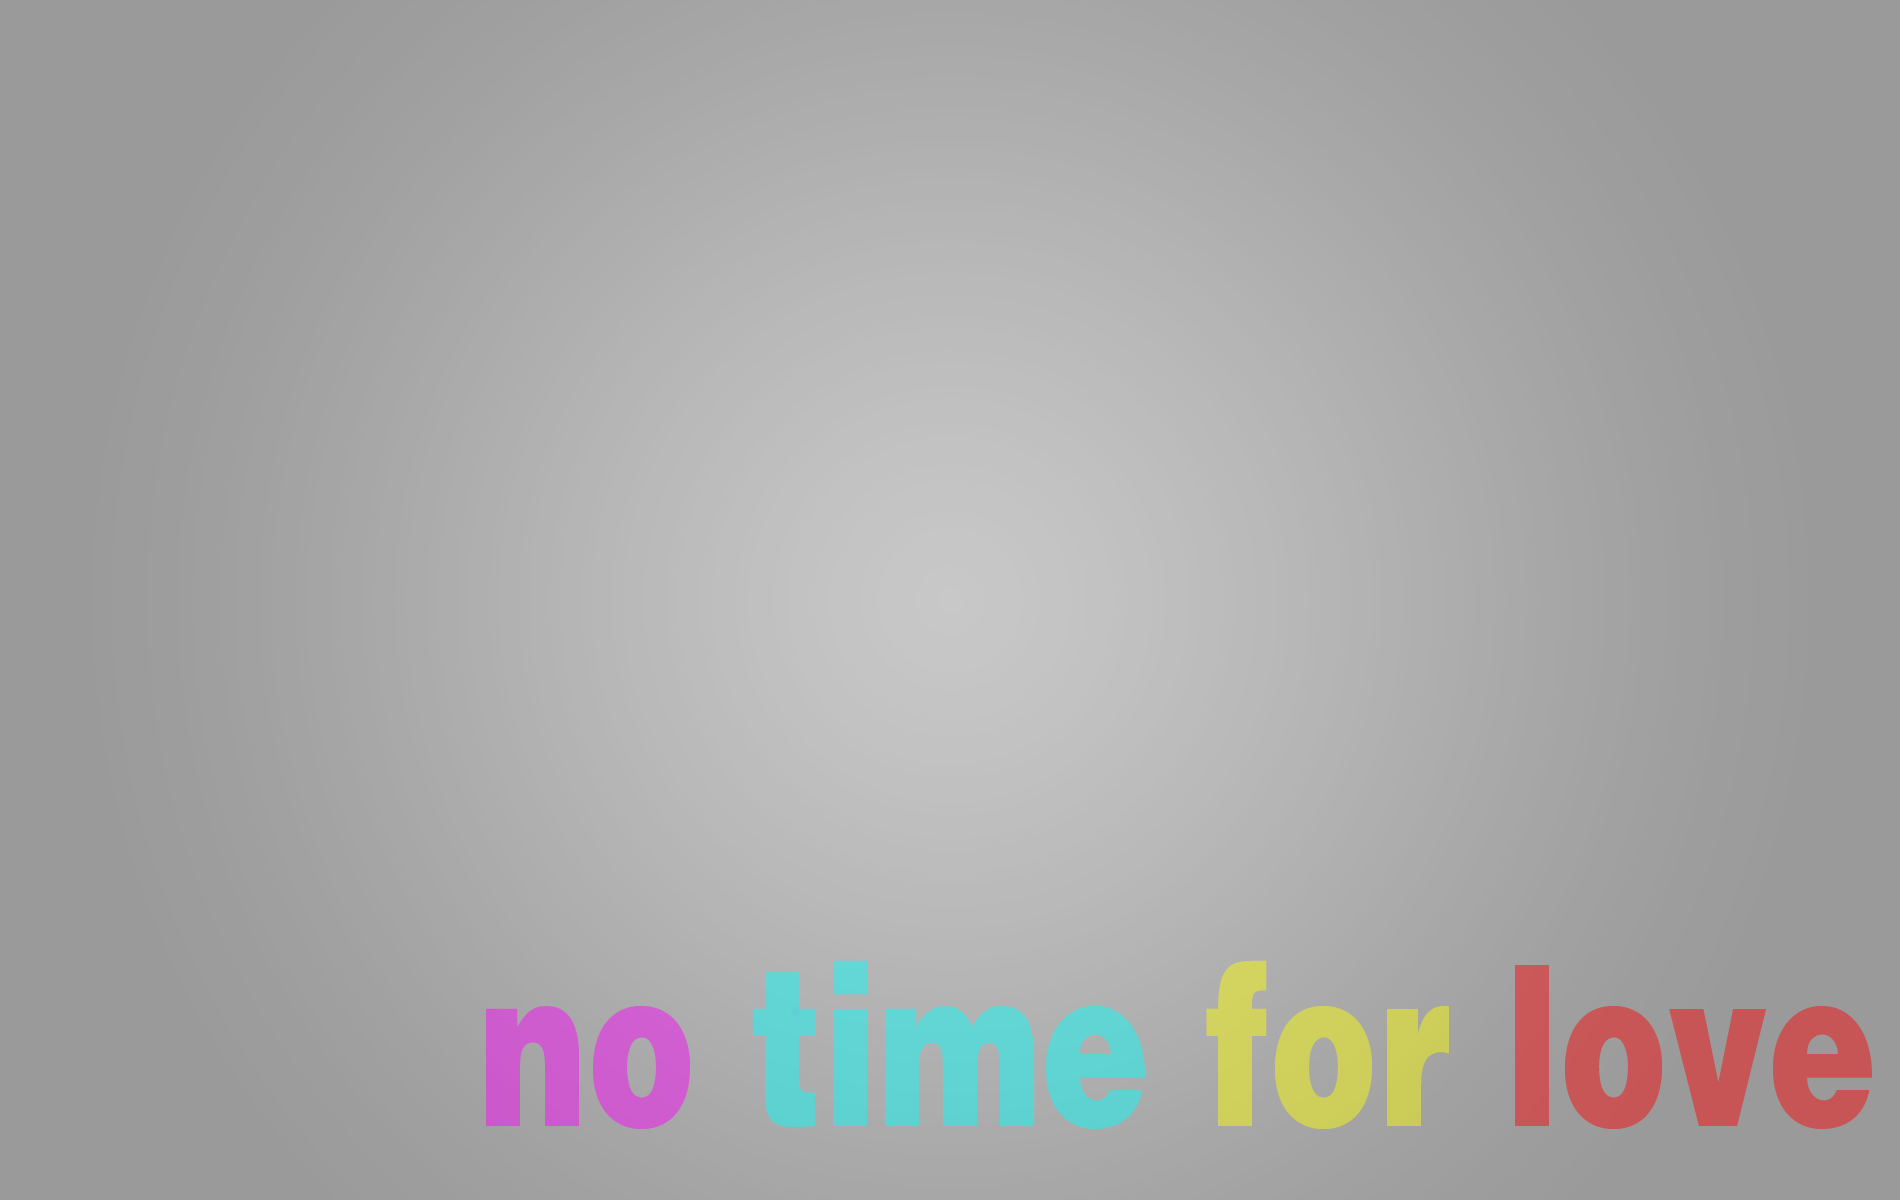 No time wal high HD Wallpaper